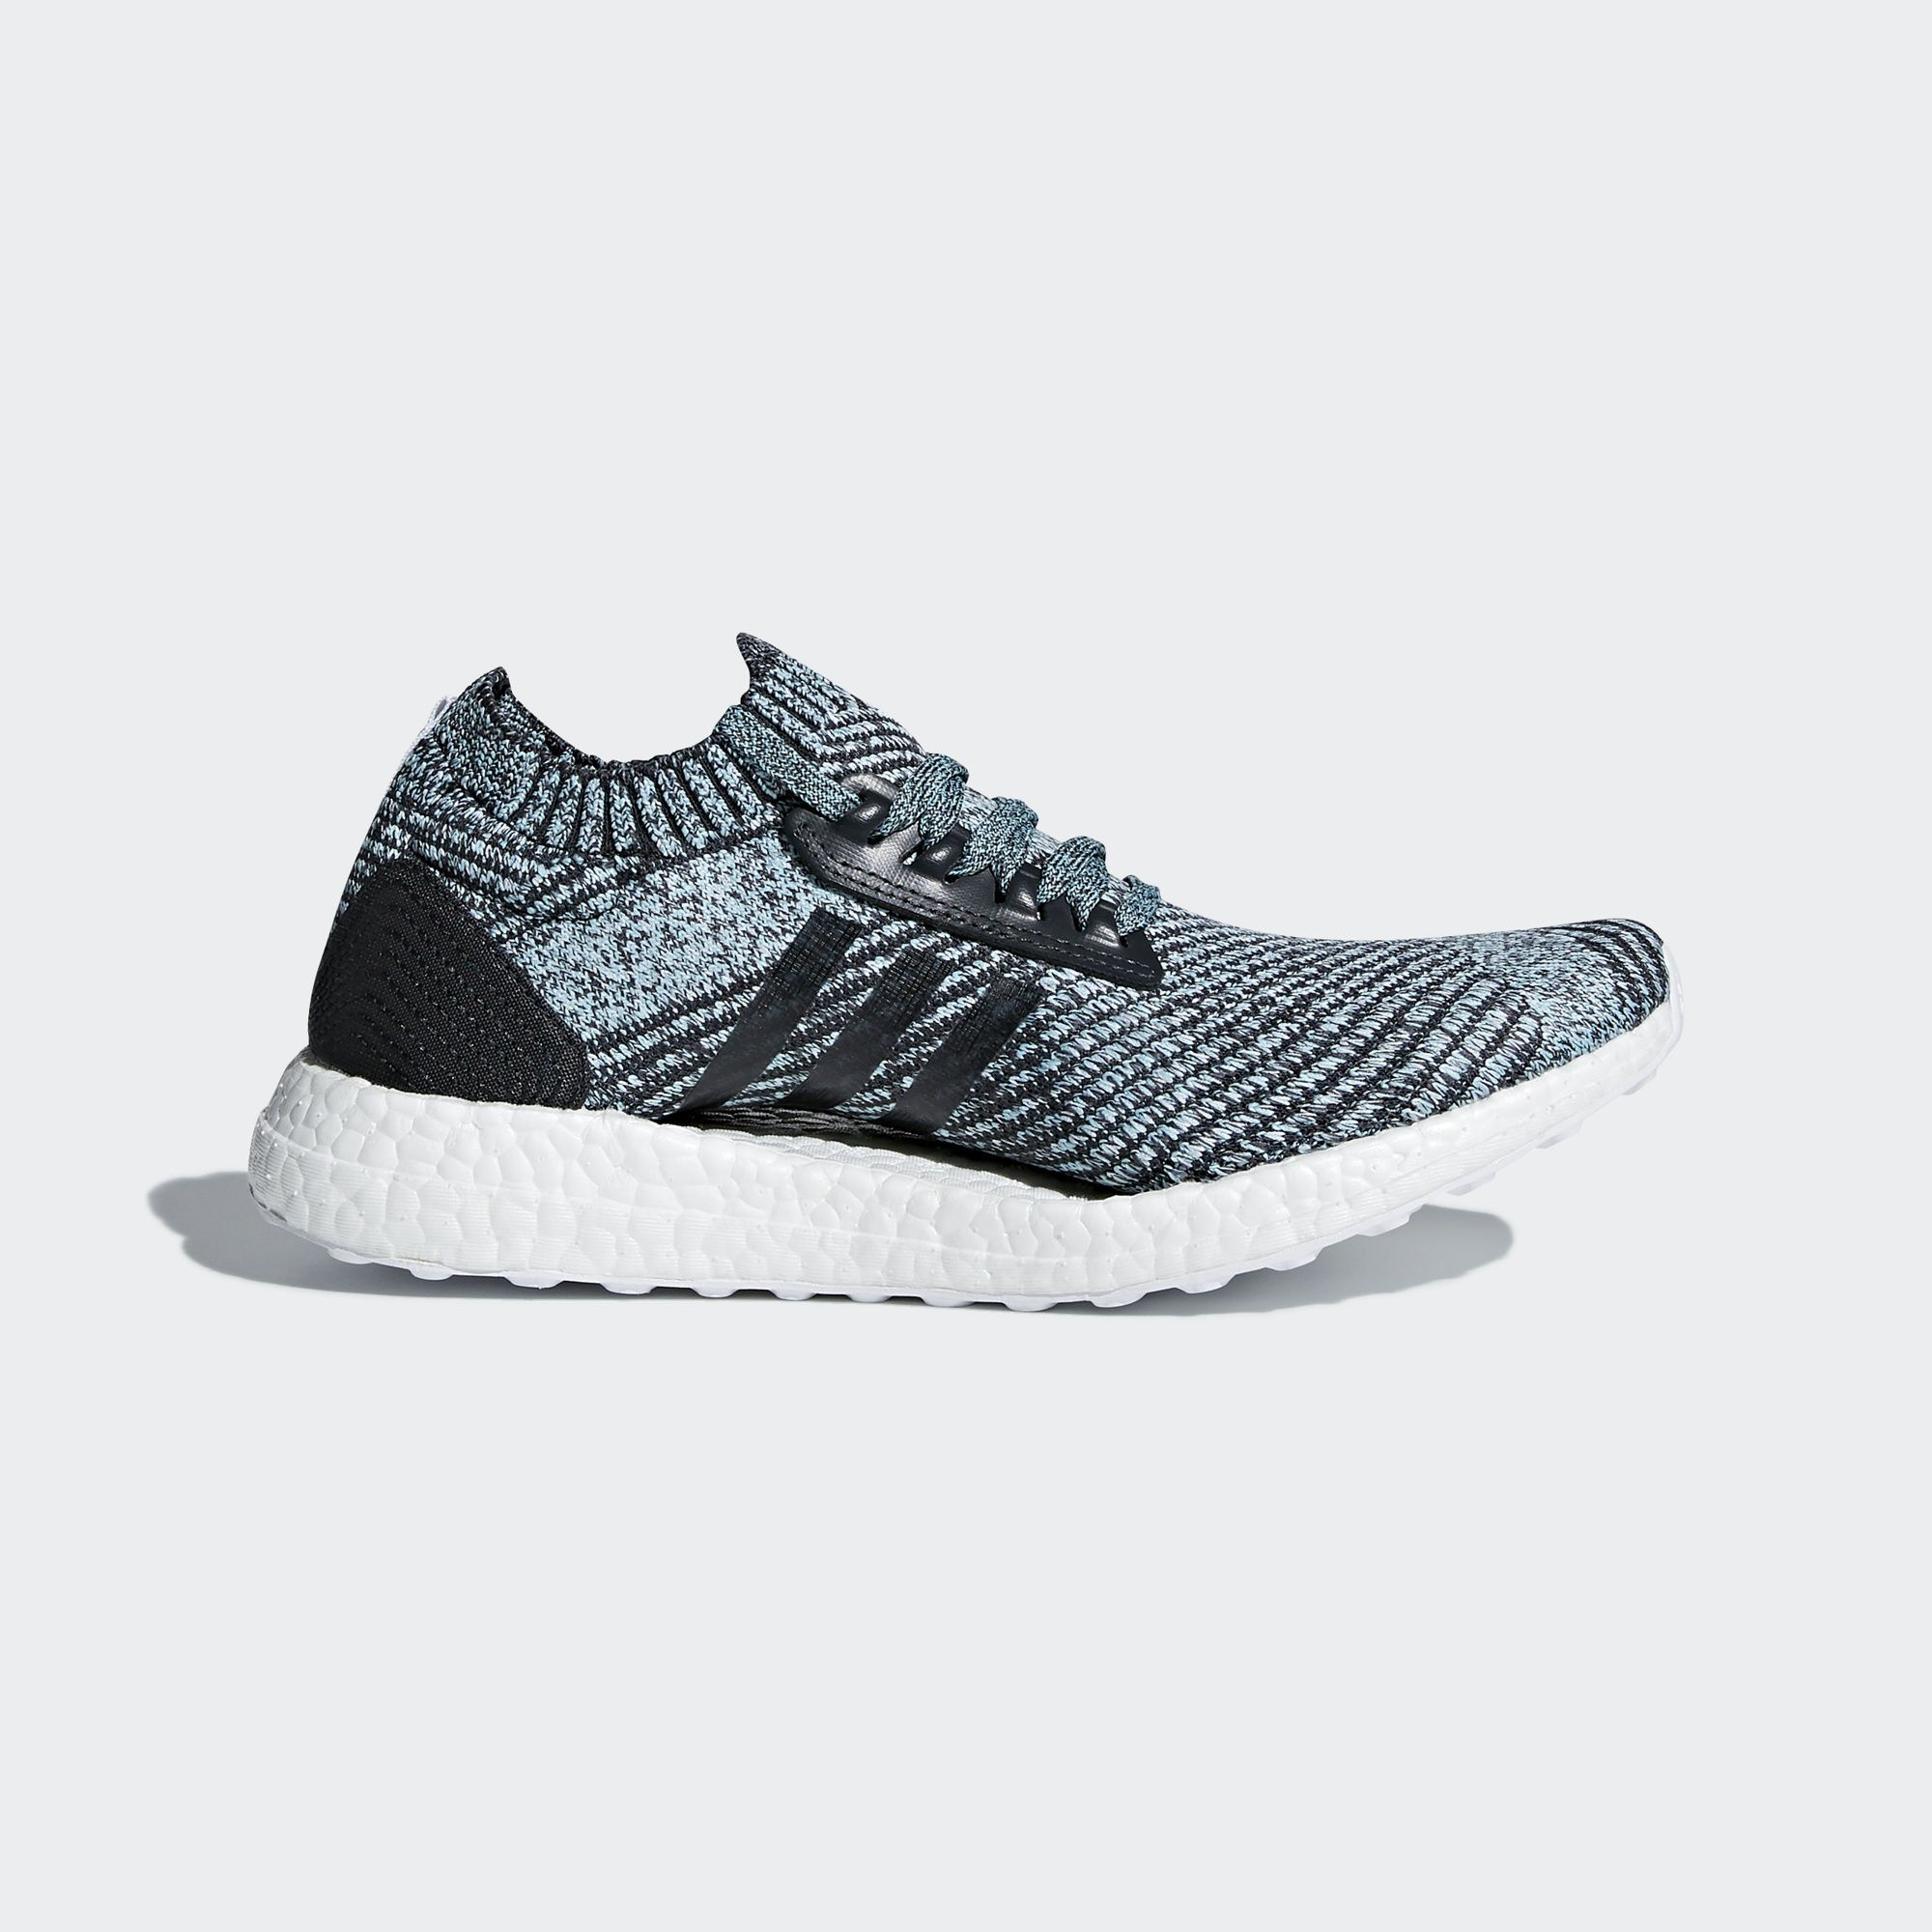 newest eec50 34022 Shop the Ultraboost X Parley Shoes - Grey at adidas.comus! See all the  styles and colors of Ultraboost X Parley Shoes - Grey at the official adidas  online ...